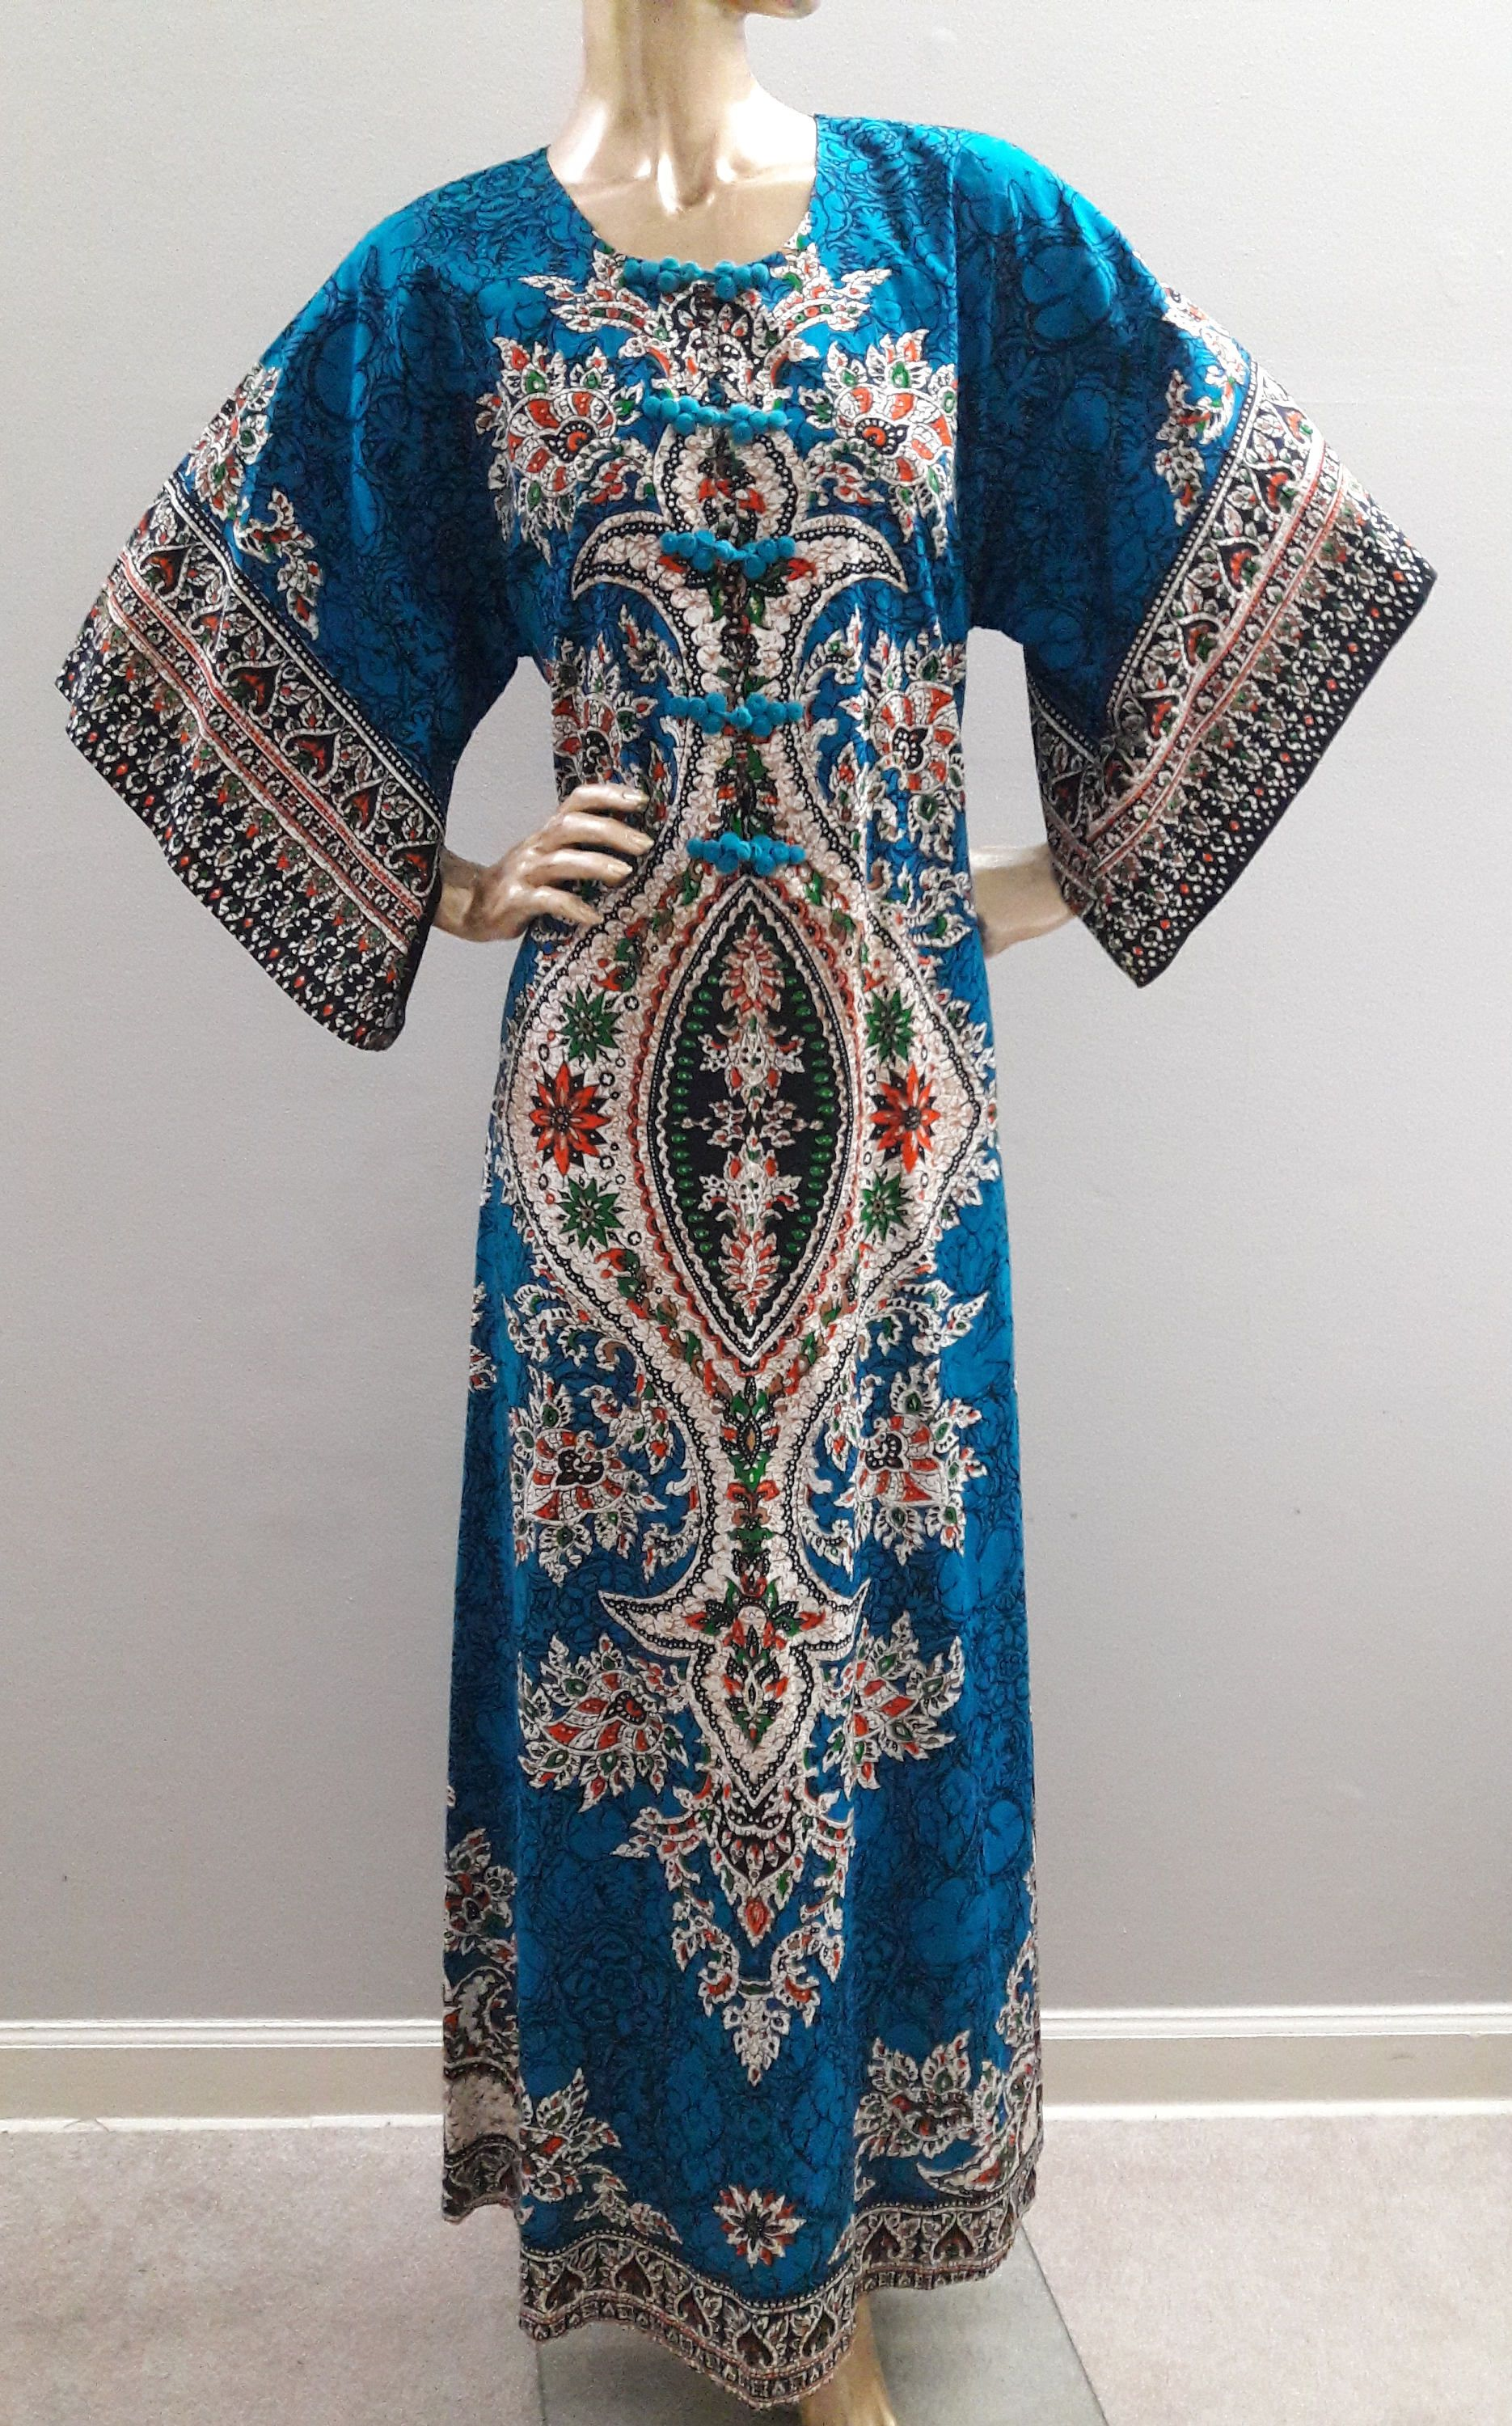 Vintage Batik Maxi Dress Size M Blue Cotton Multi Color Java Print